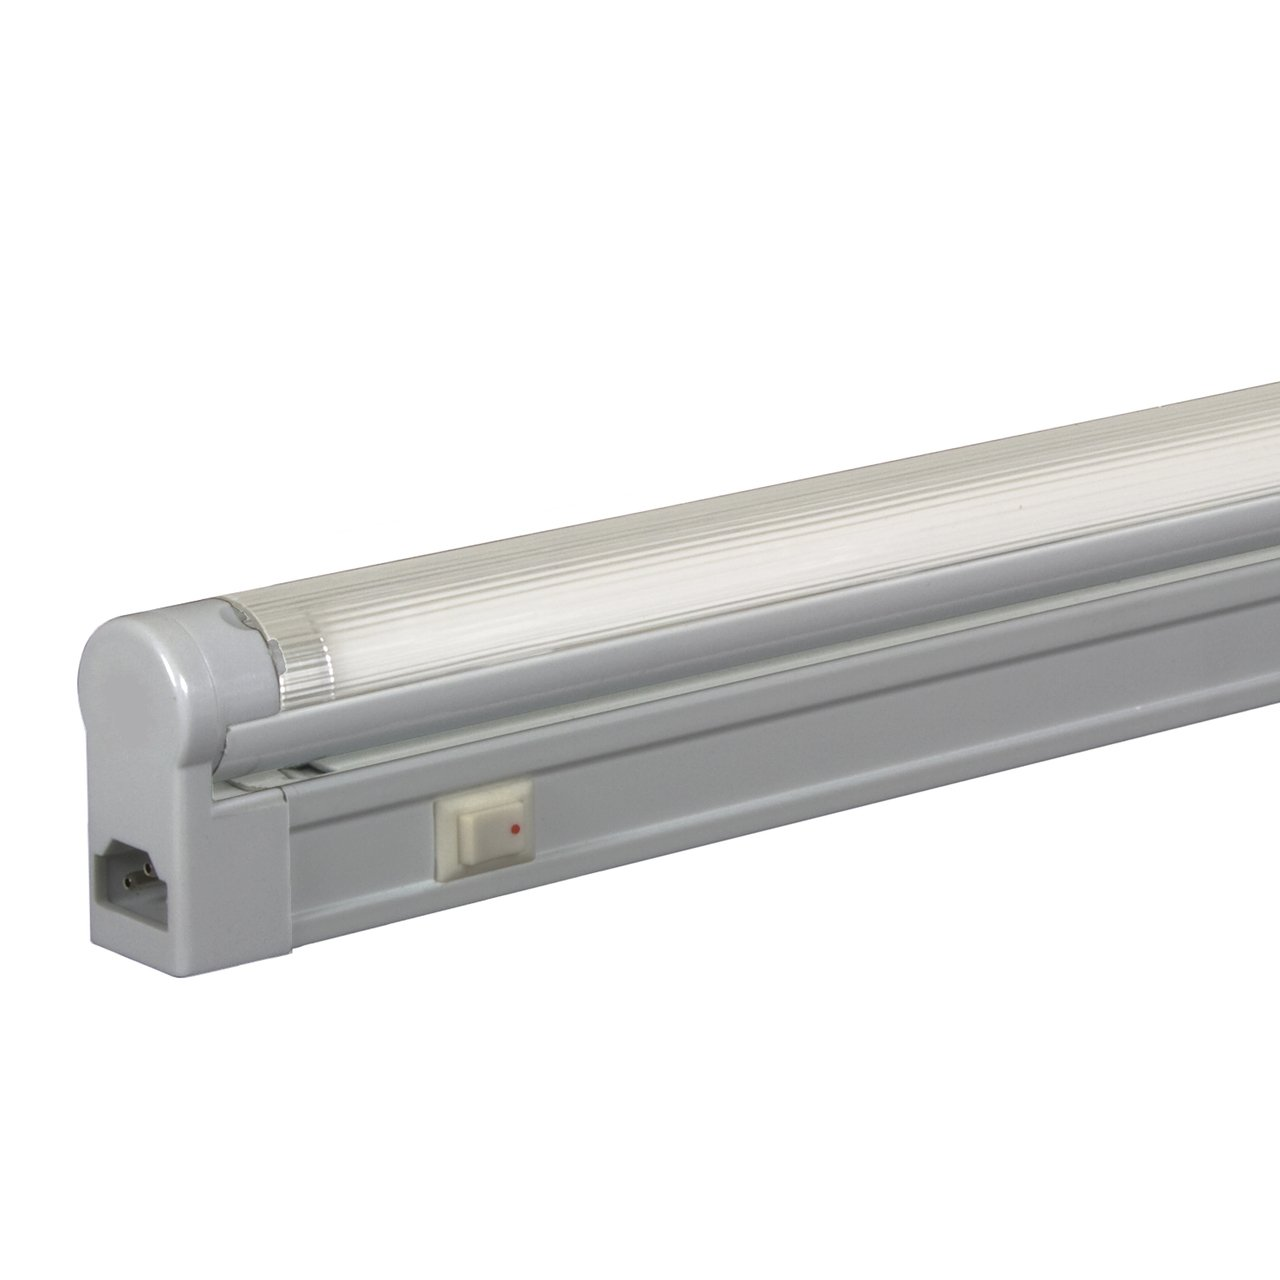 Jesco Lighting SG5A-28SW/41-SV Sleek Plus Adjustable Grounded 28-Watt T5 Light Fixture, 4100K Color, Silver Finish, With Switch